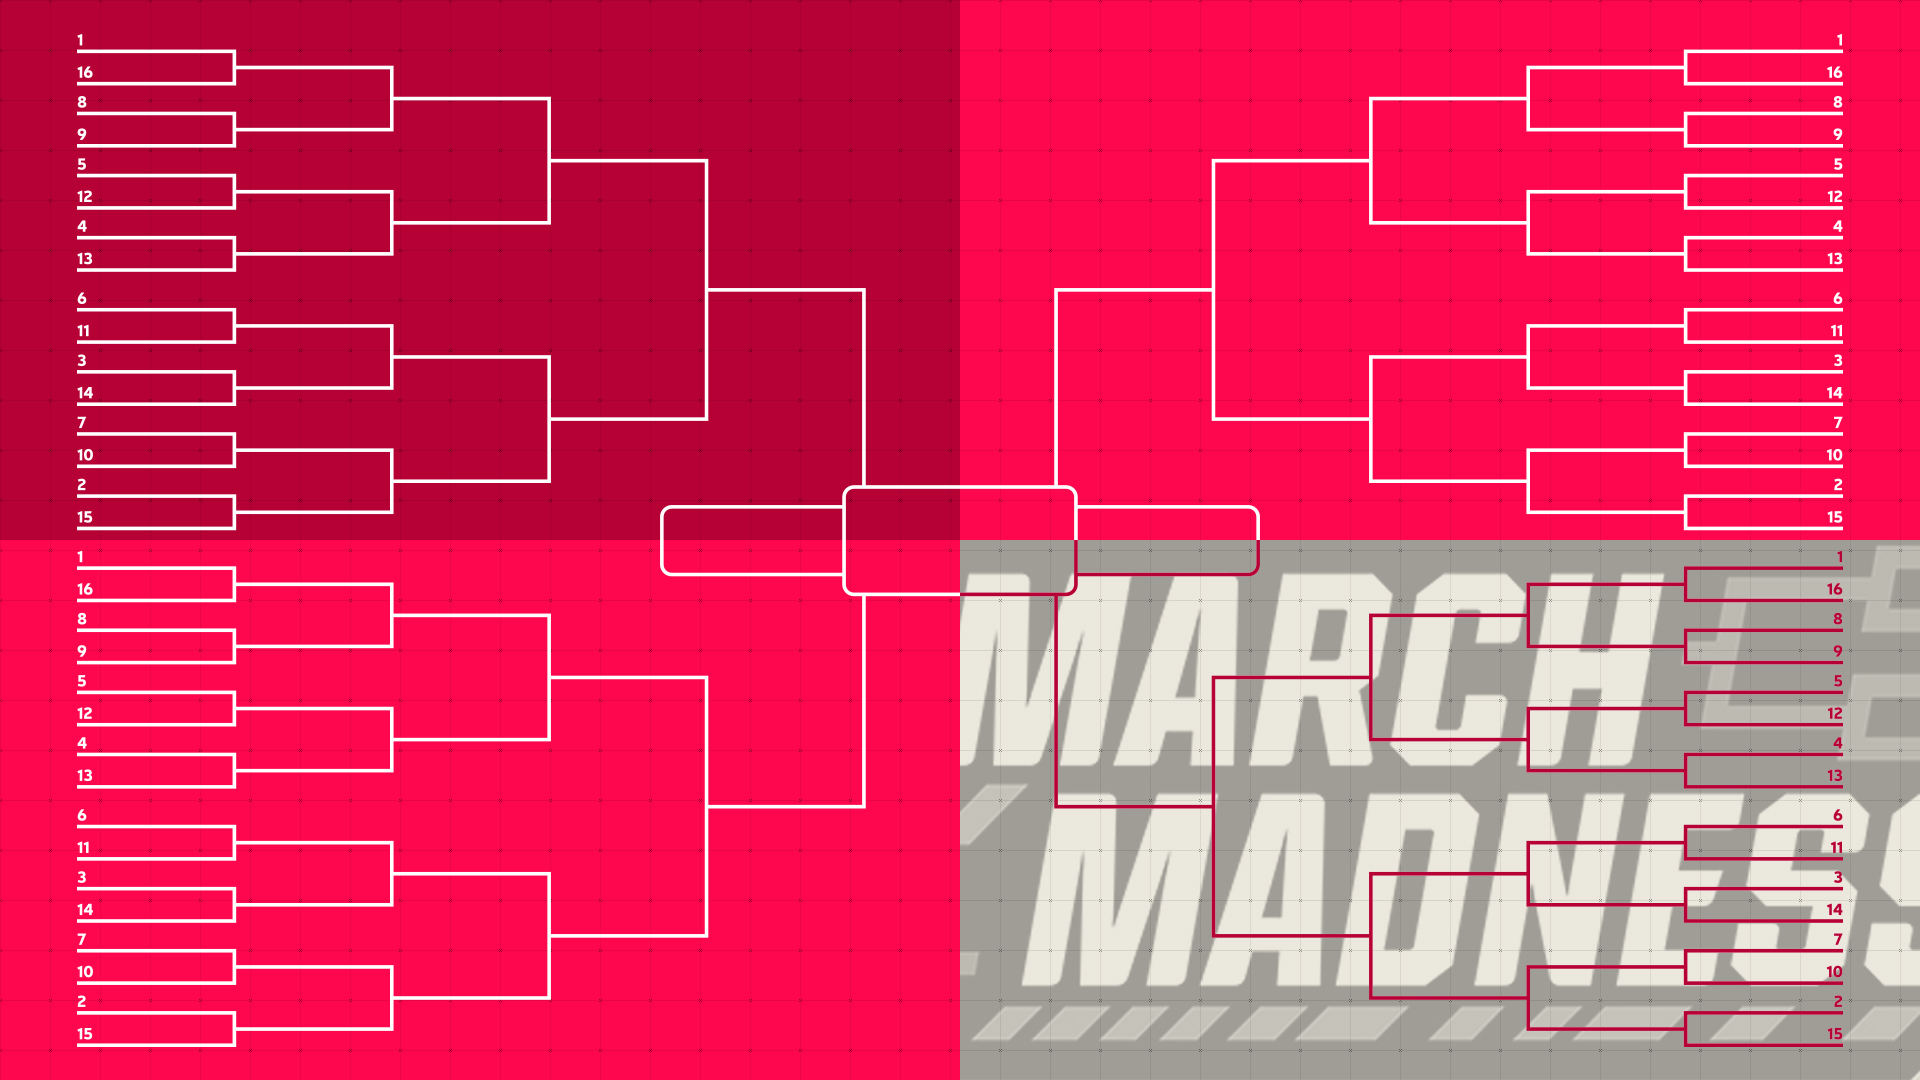 March Madness bracket 2019: Final NCAA Tournament field of